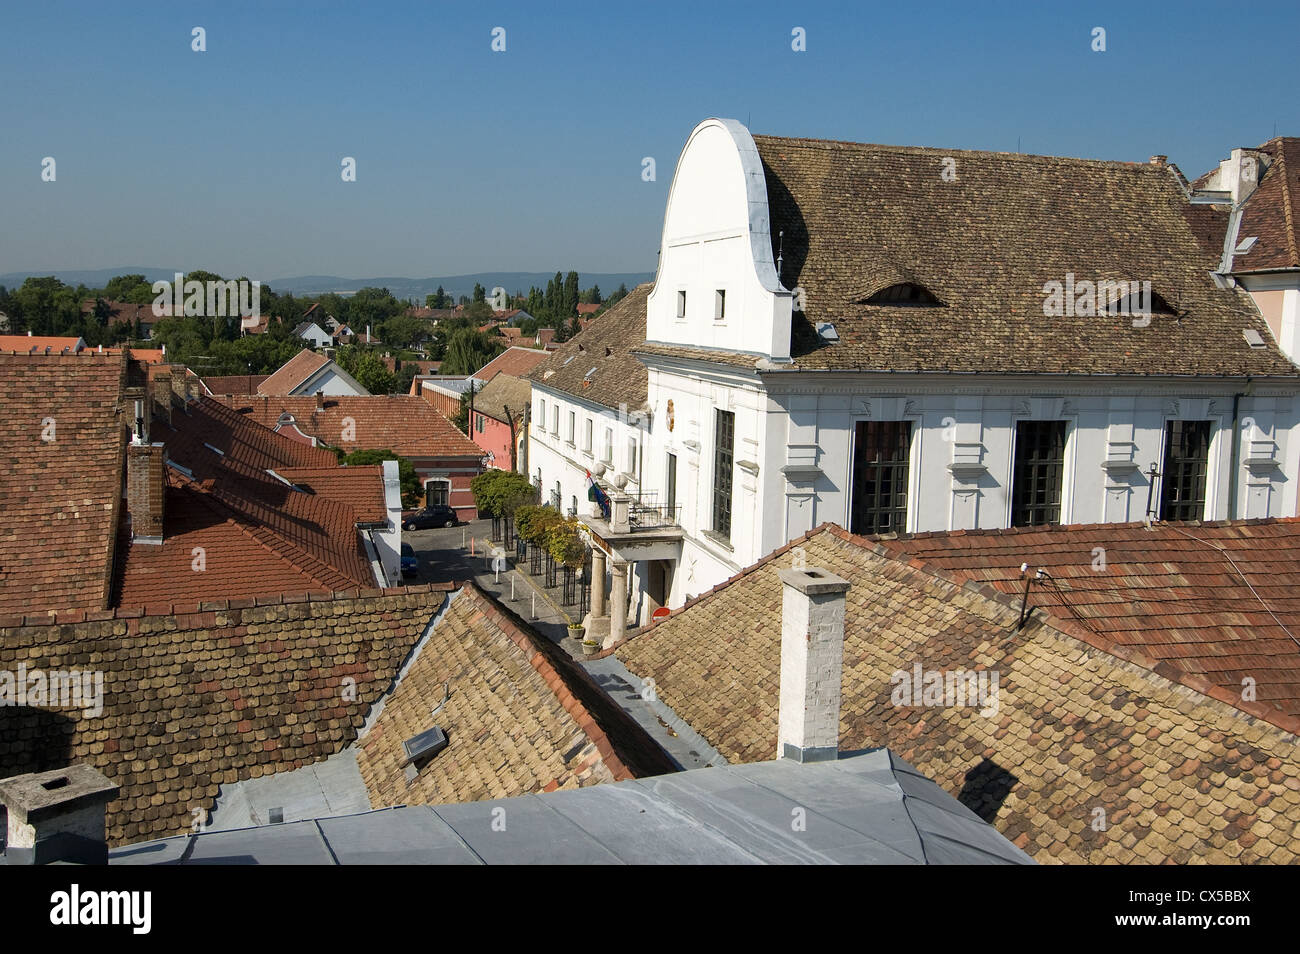 Elk190-2027 Hungary, Szentendre, Town Hall with tile roofs around - Stock Image